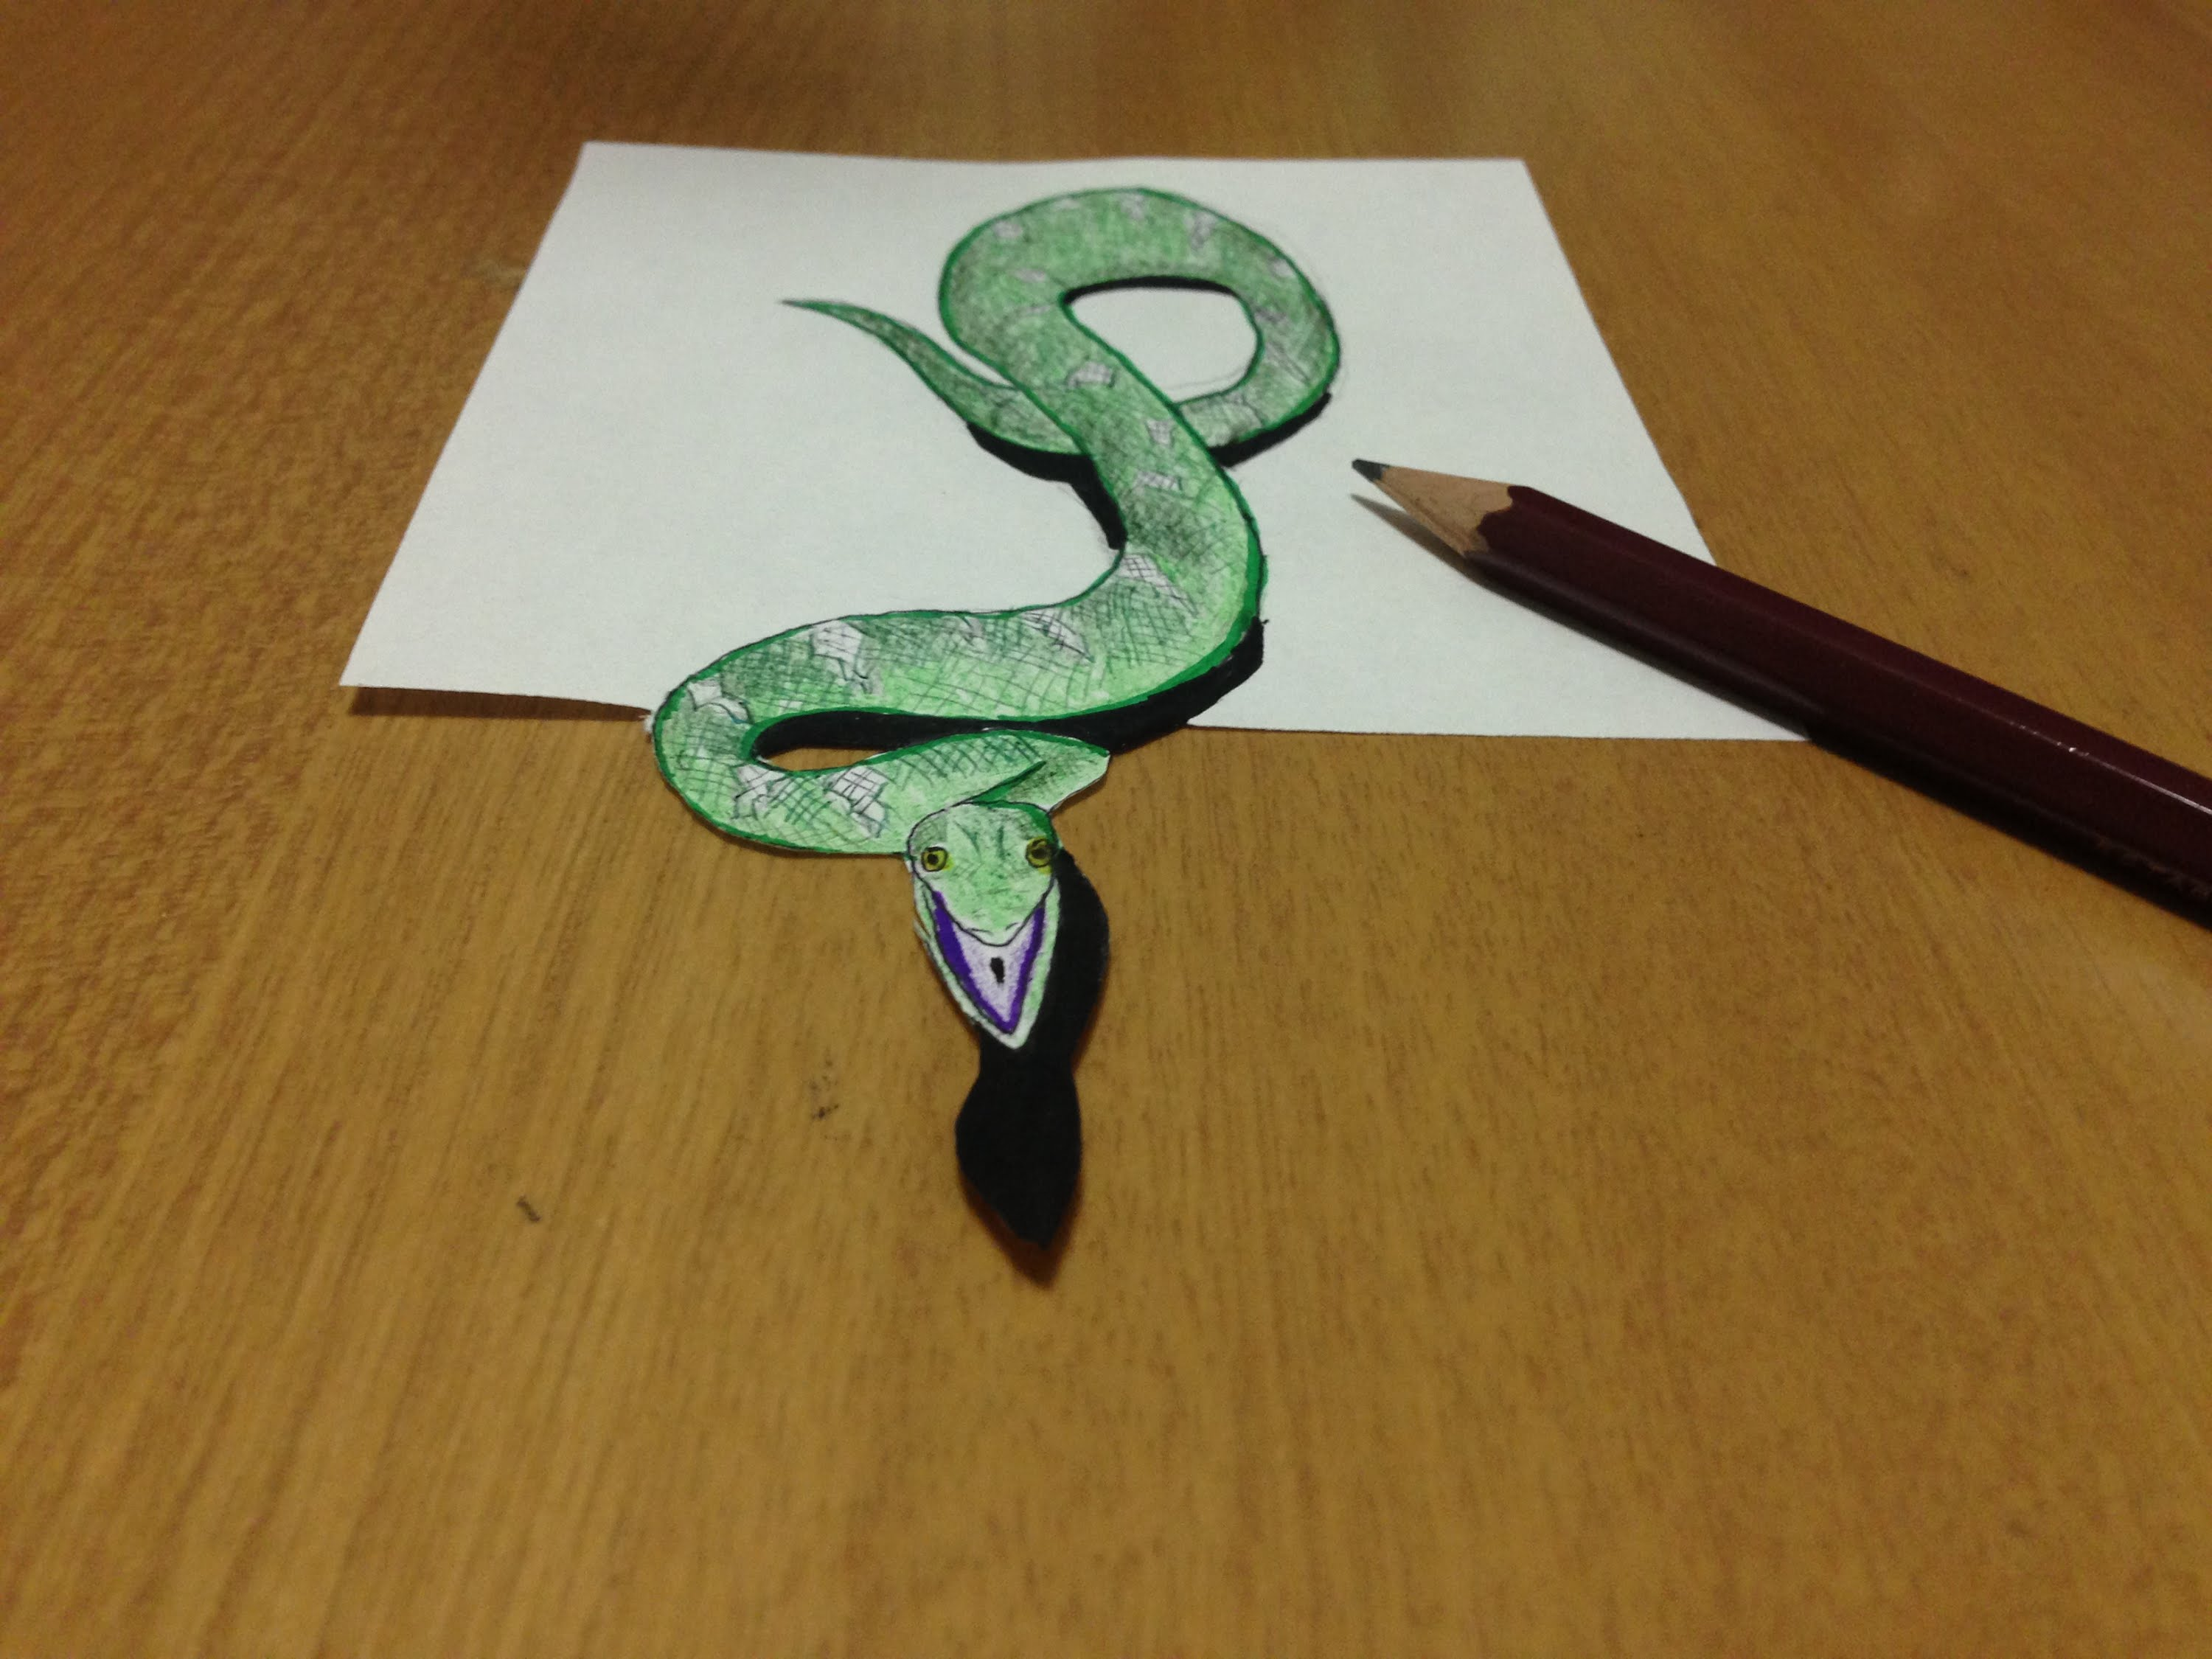 Drawn spider snake Drawing Illusion Snake 3D YouTube